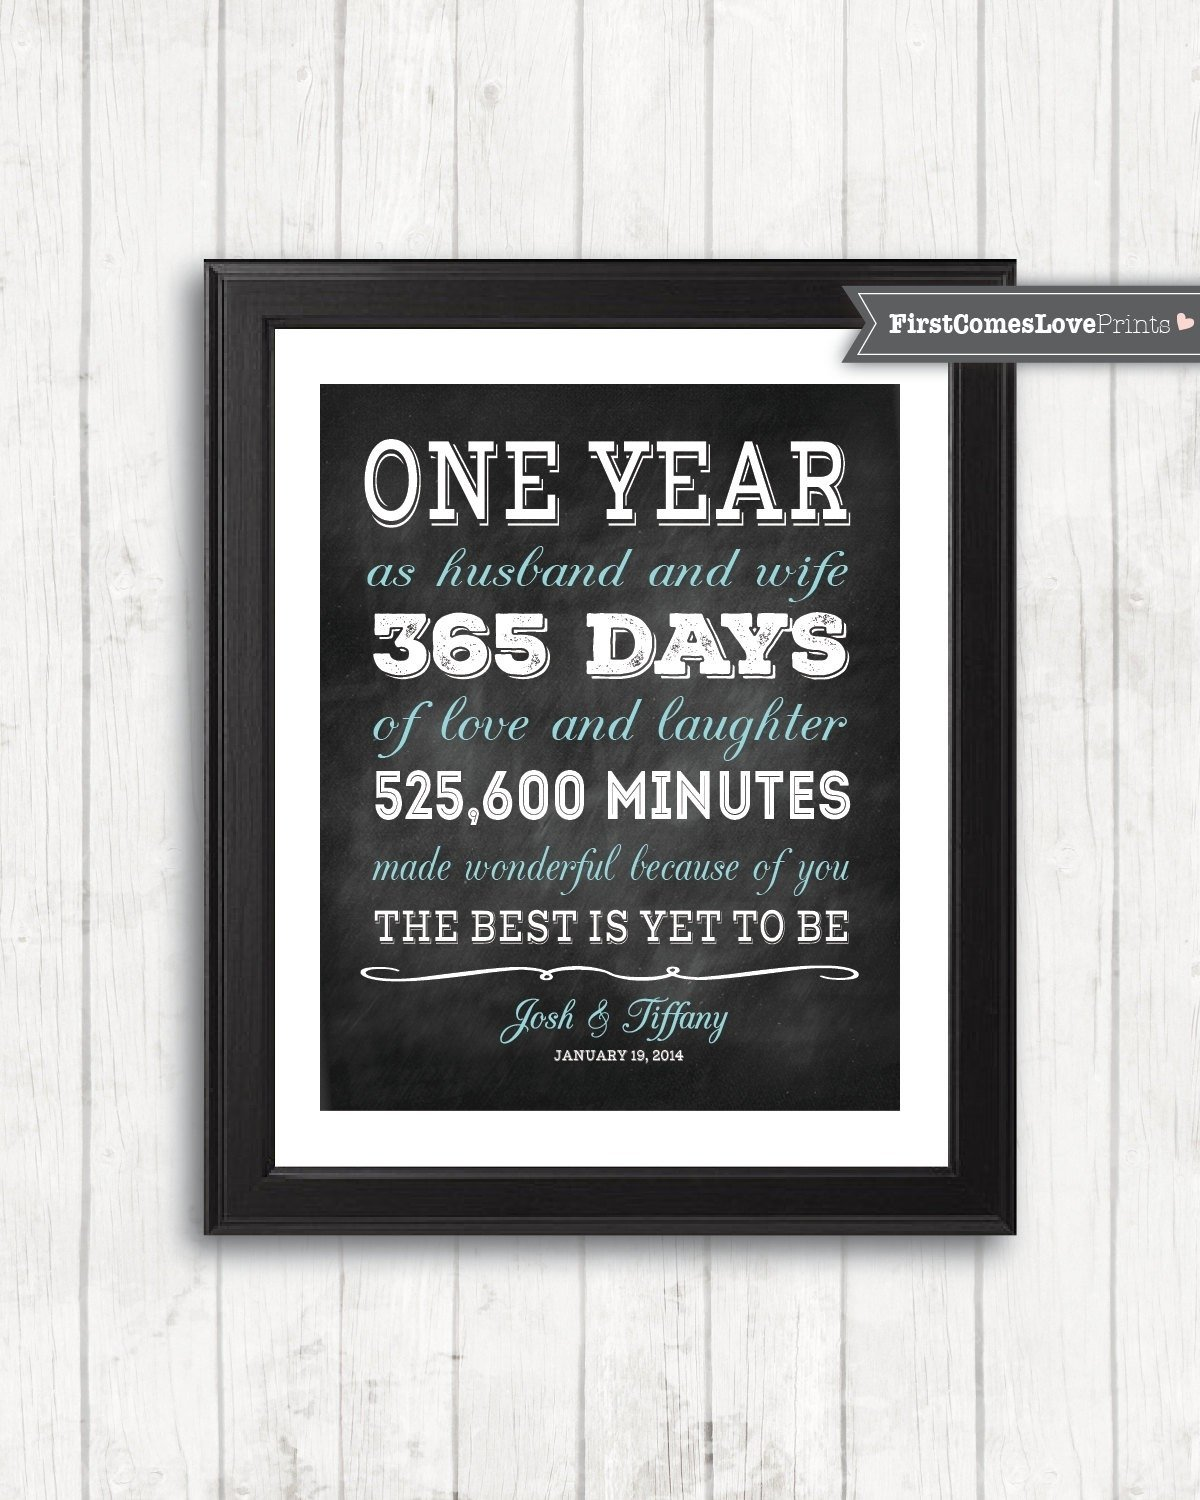 10 Famous 1St Year Anniversary Gift Ideas For Her st wed design inspiration 1st wedding anniversary gift ideas him 1 2020